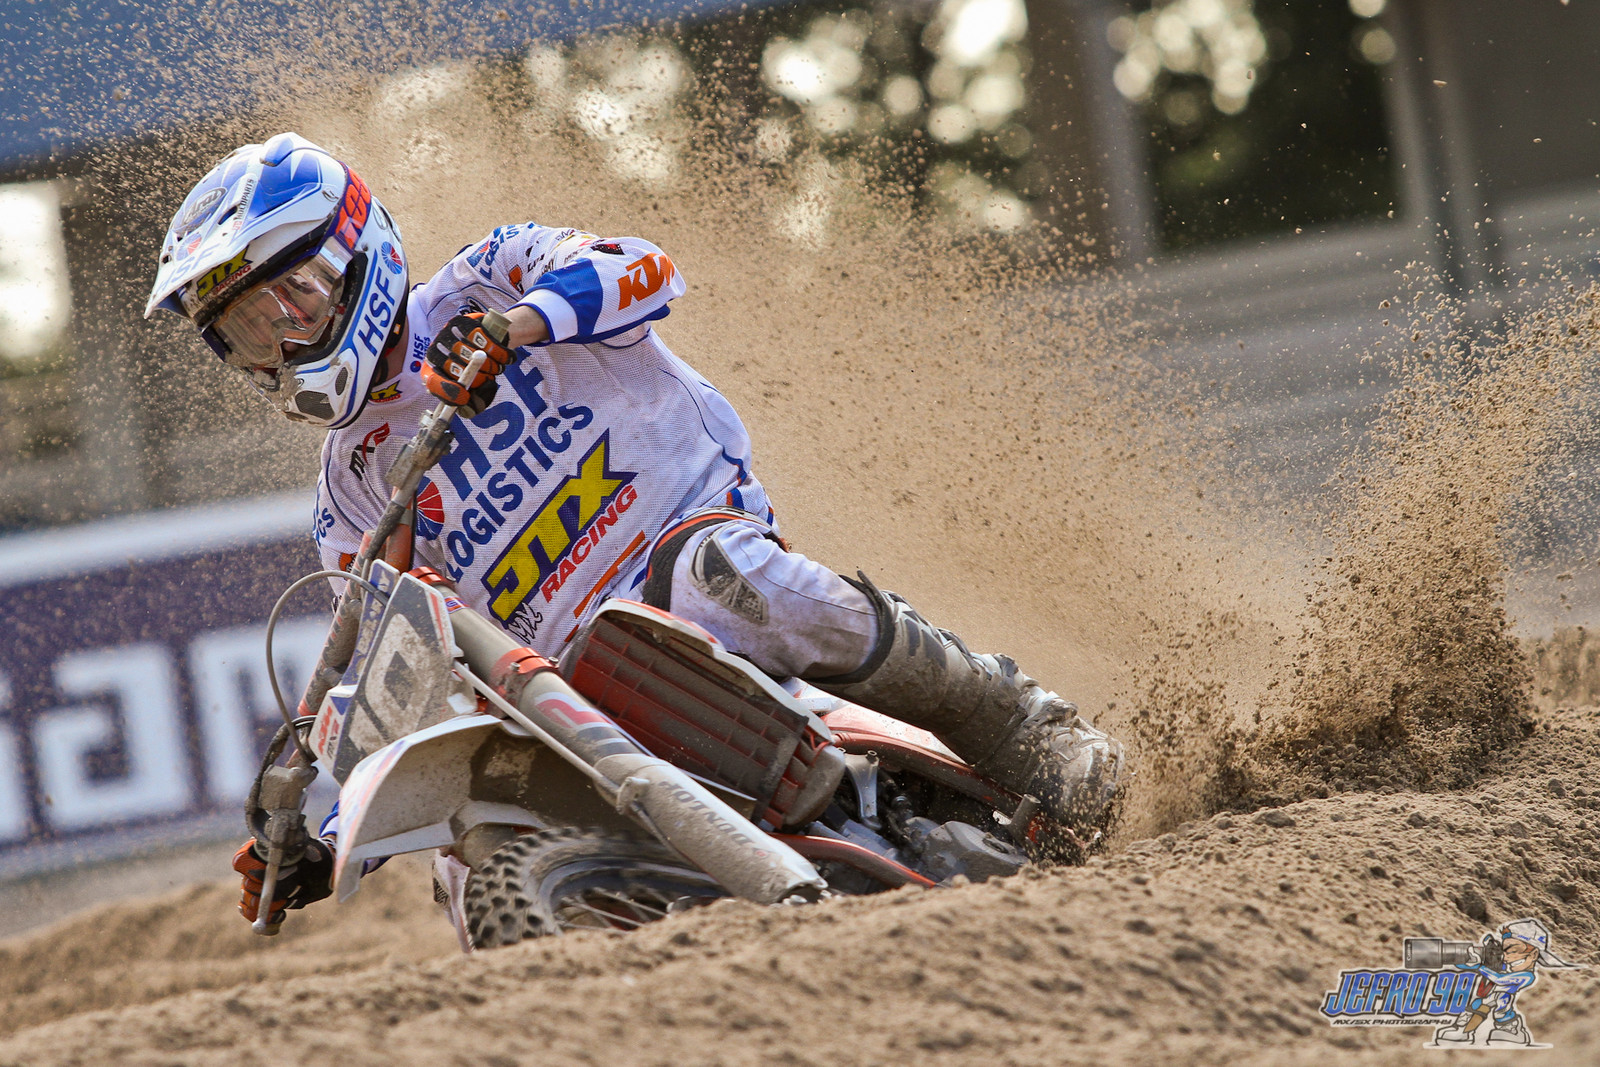 Calvin Vlaanderen - Photo Gallery: MXGP of the Netherlands - Motocross Pictures - Vital MX